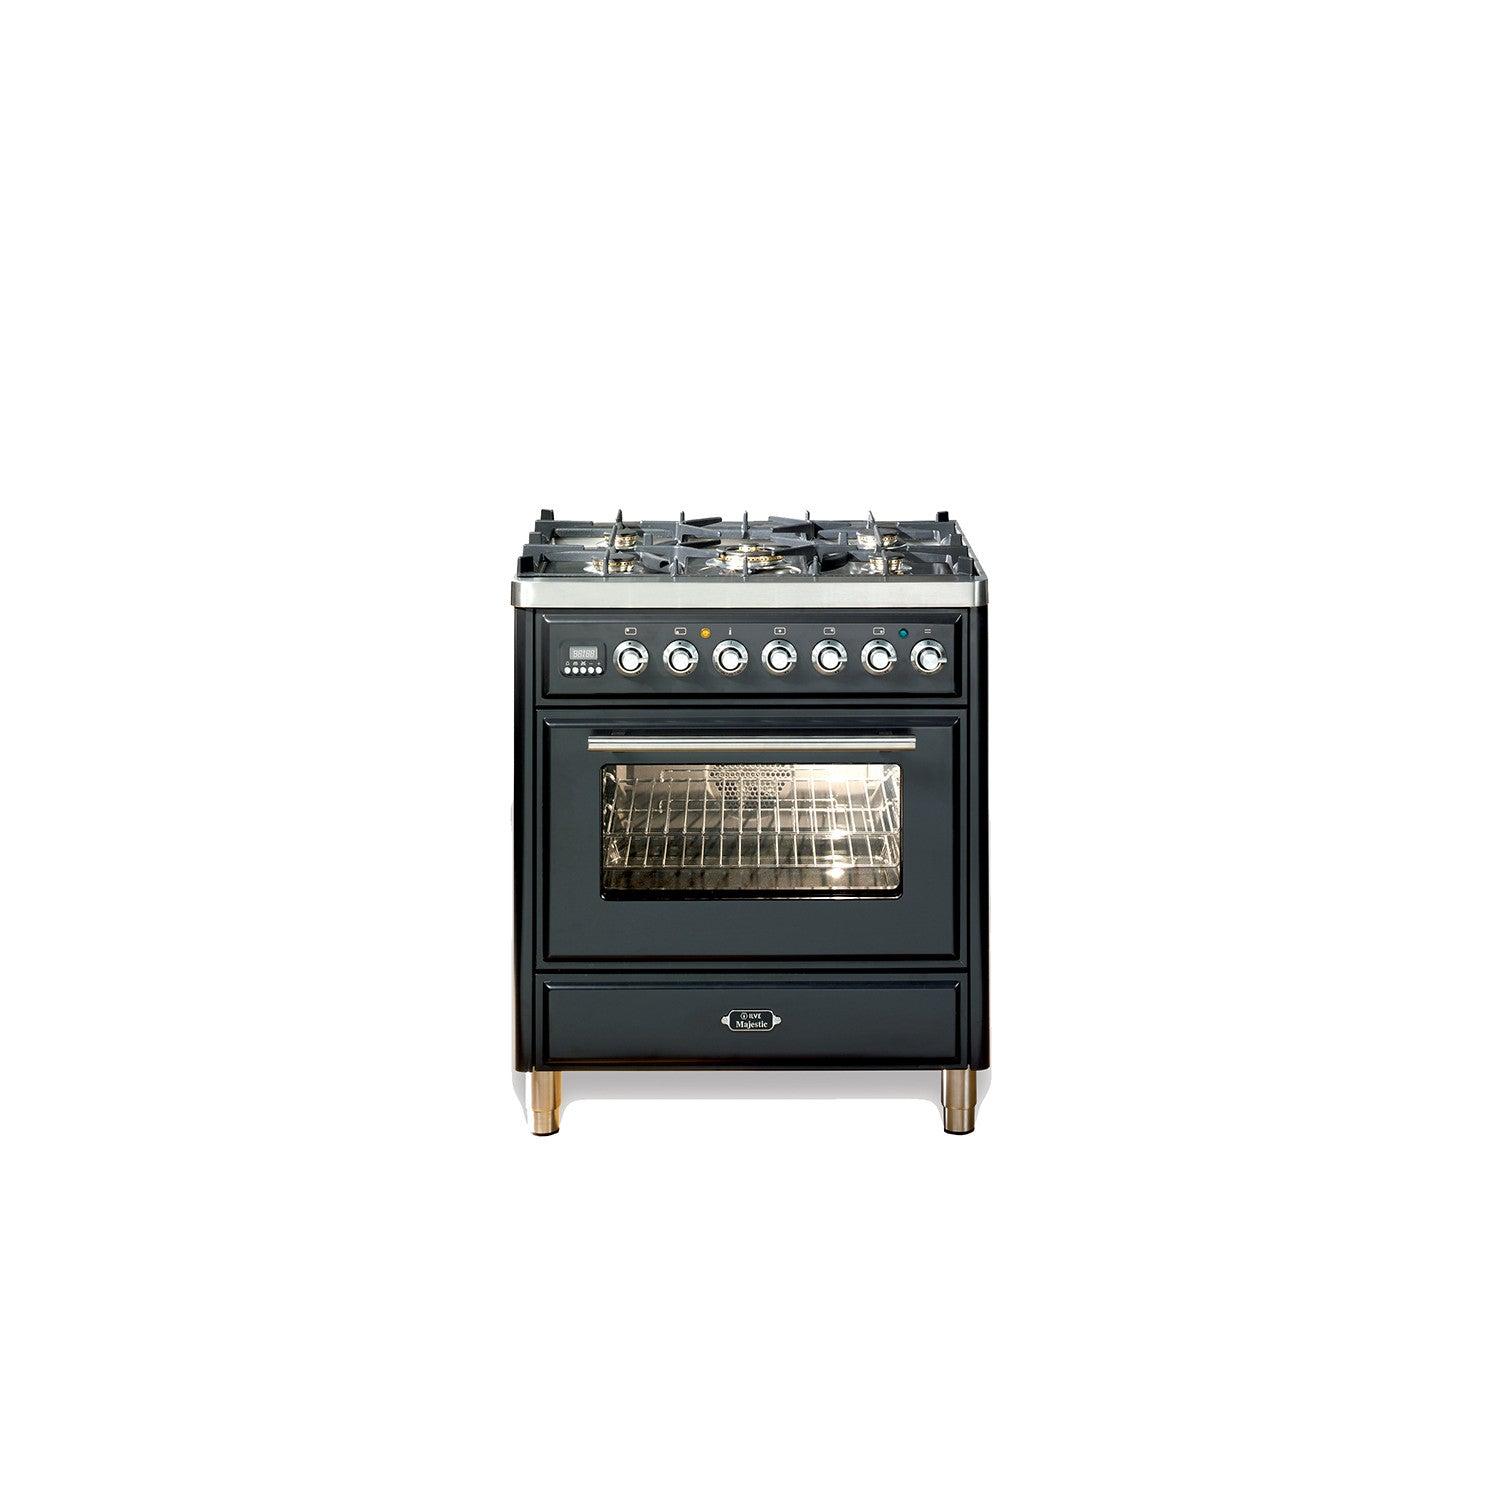 Majestic Roma 76cm Single Dual Fuel Range Cooker